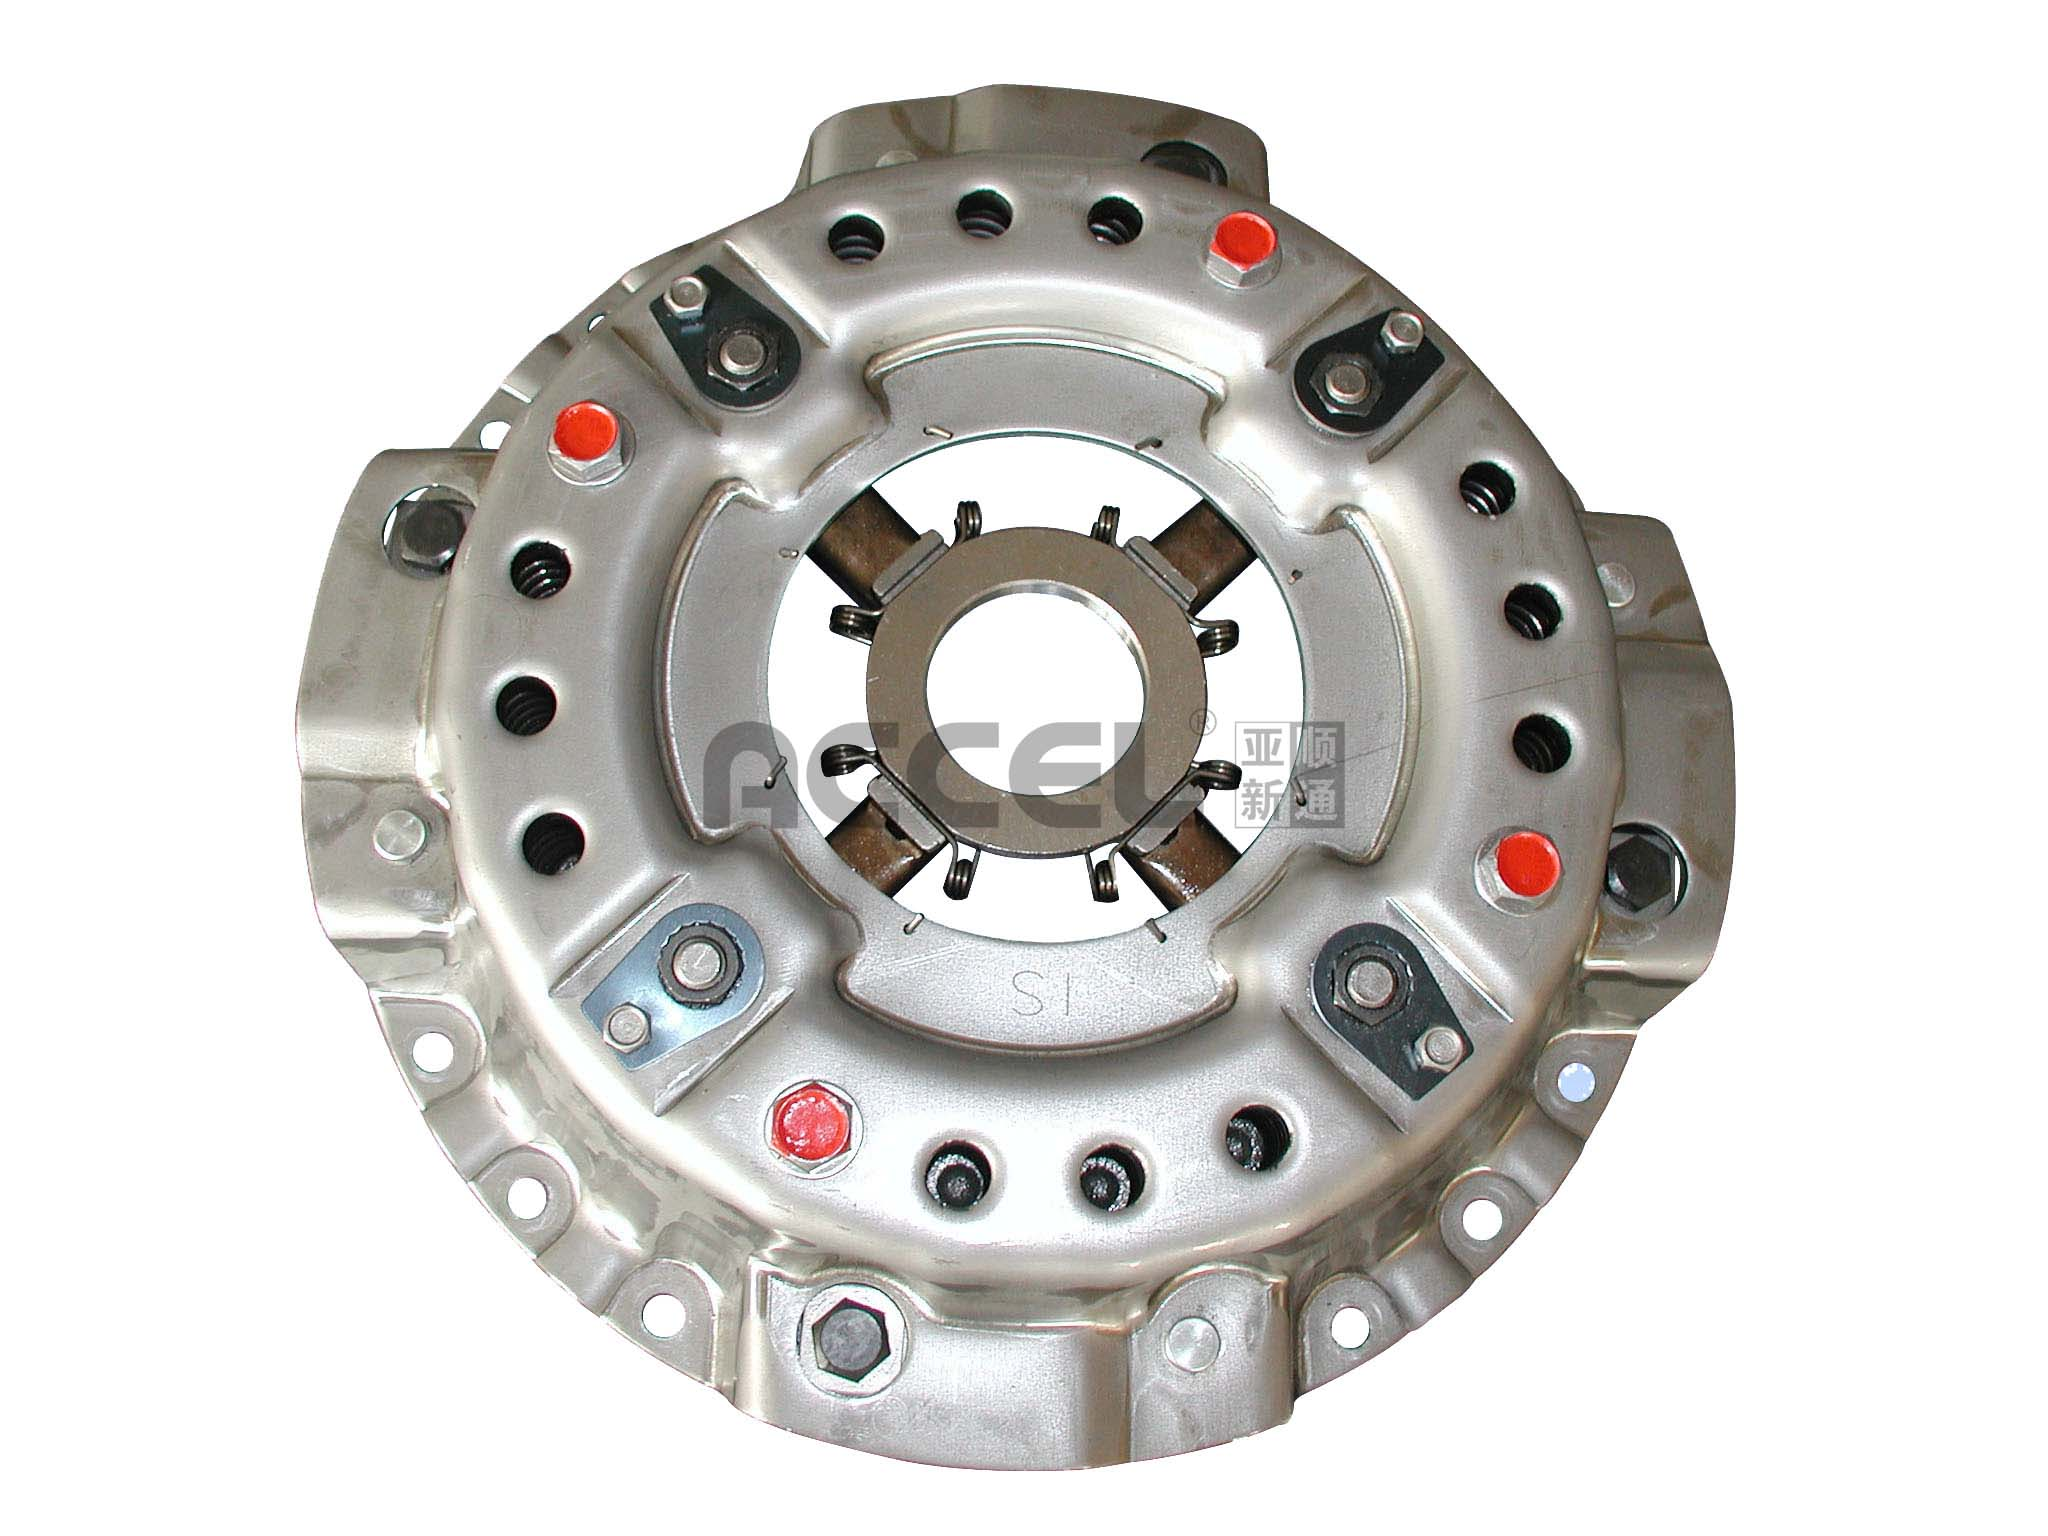 Clutch Cover/OE:31210-1221/300*190*350/CMB-019/MITSUBISHI/LY179/ISC549/ME520086